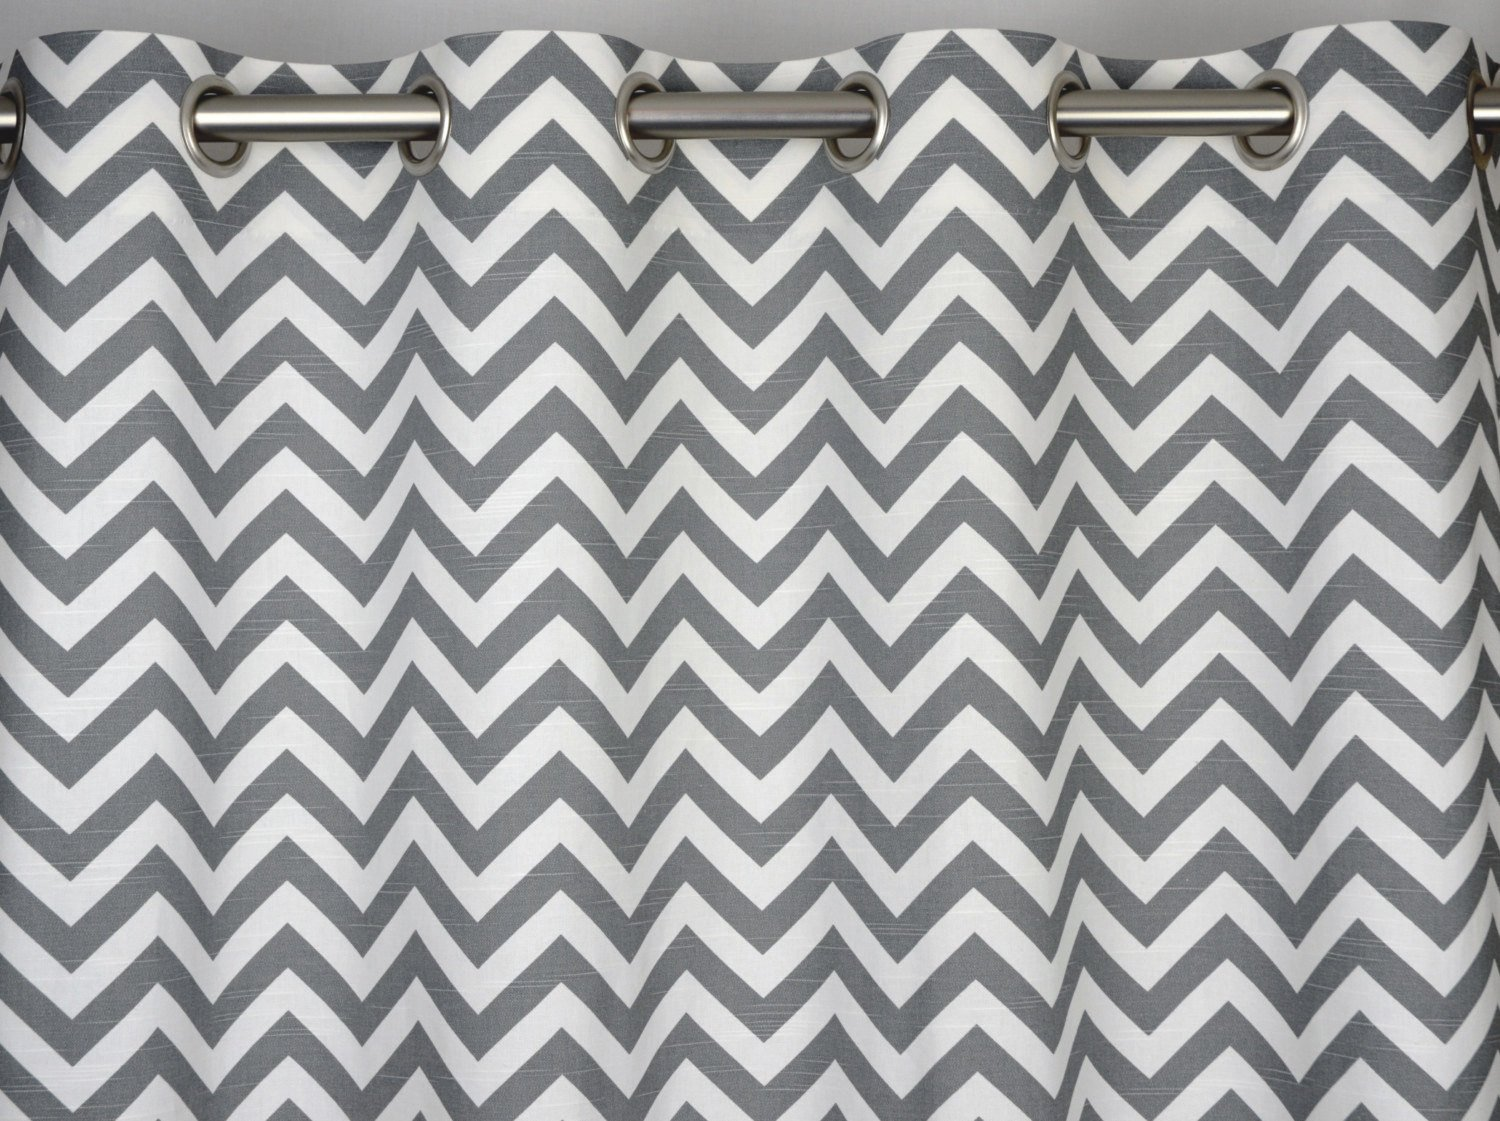 Ash Grey And White Chevron Zig Zag Drape With Blackout Lining, One Grommet  Top Curtain Panel 84 Inches Long X 50 Inches Wide: Amazon.co.uk: Kitchen U0026  Home